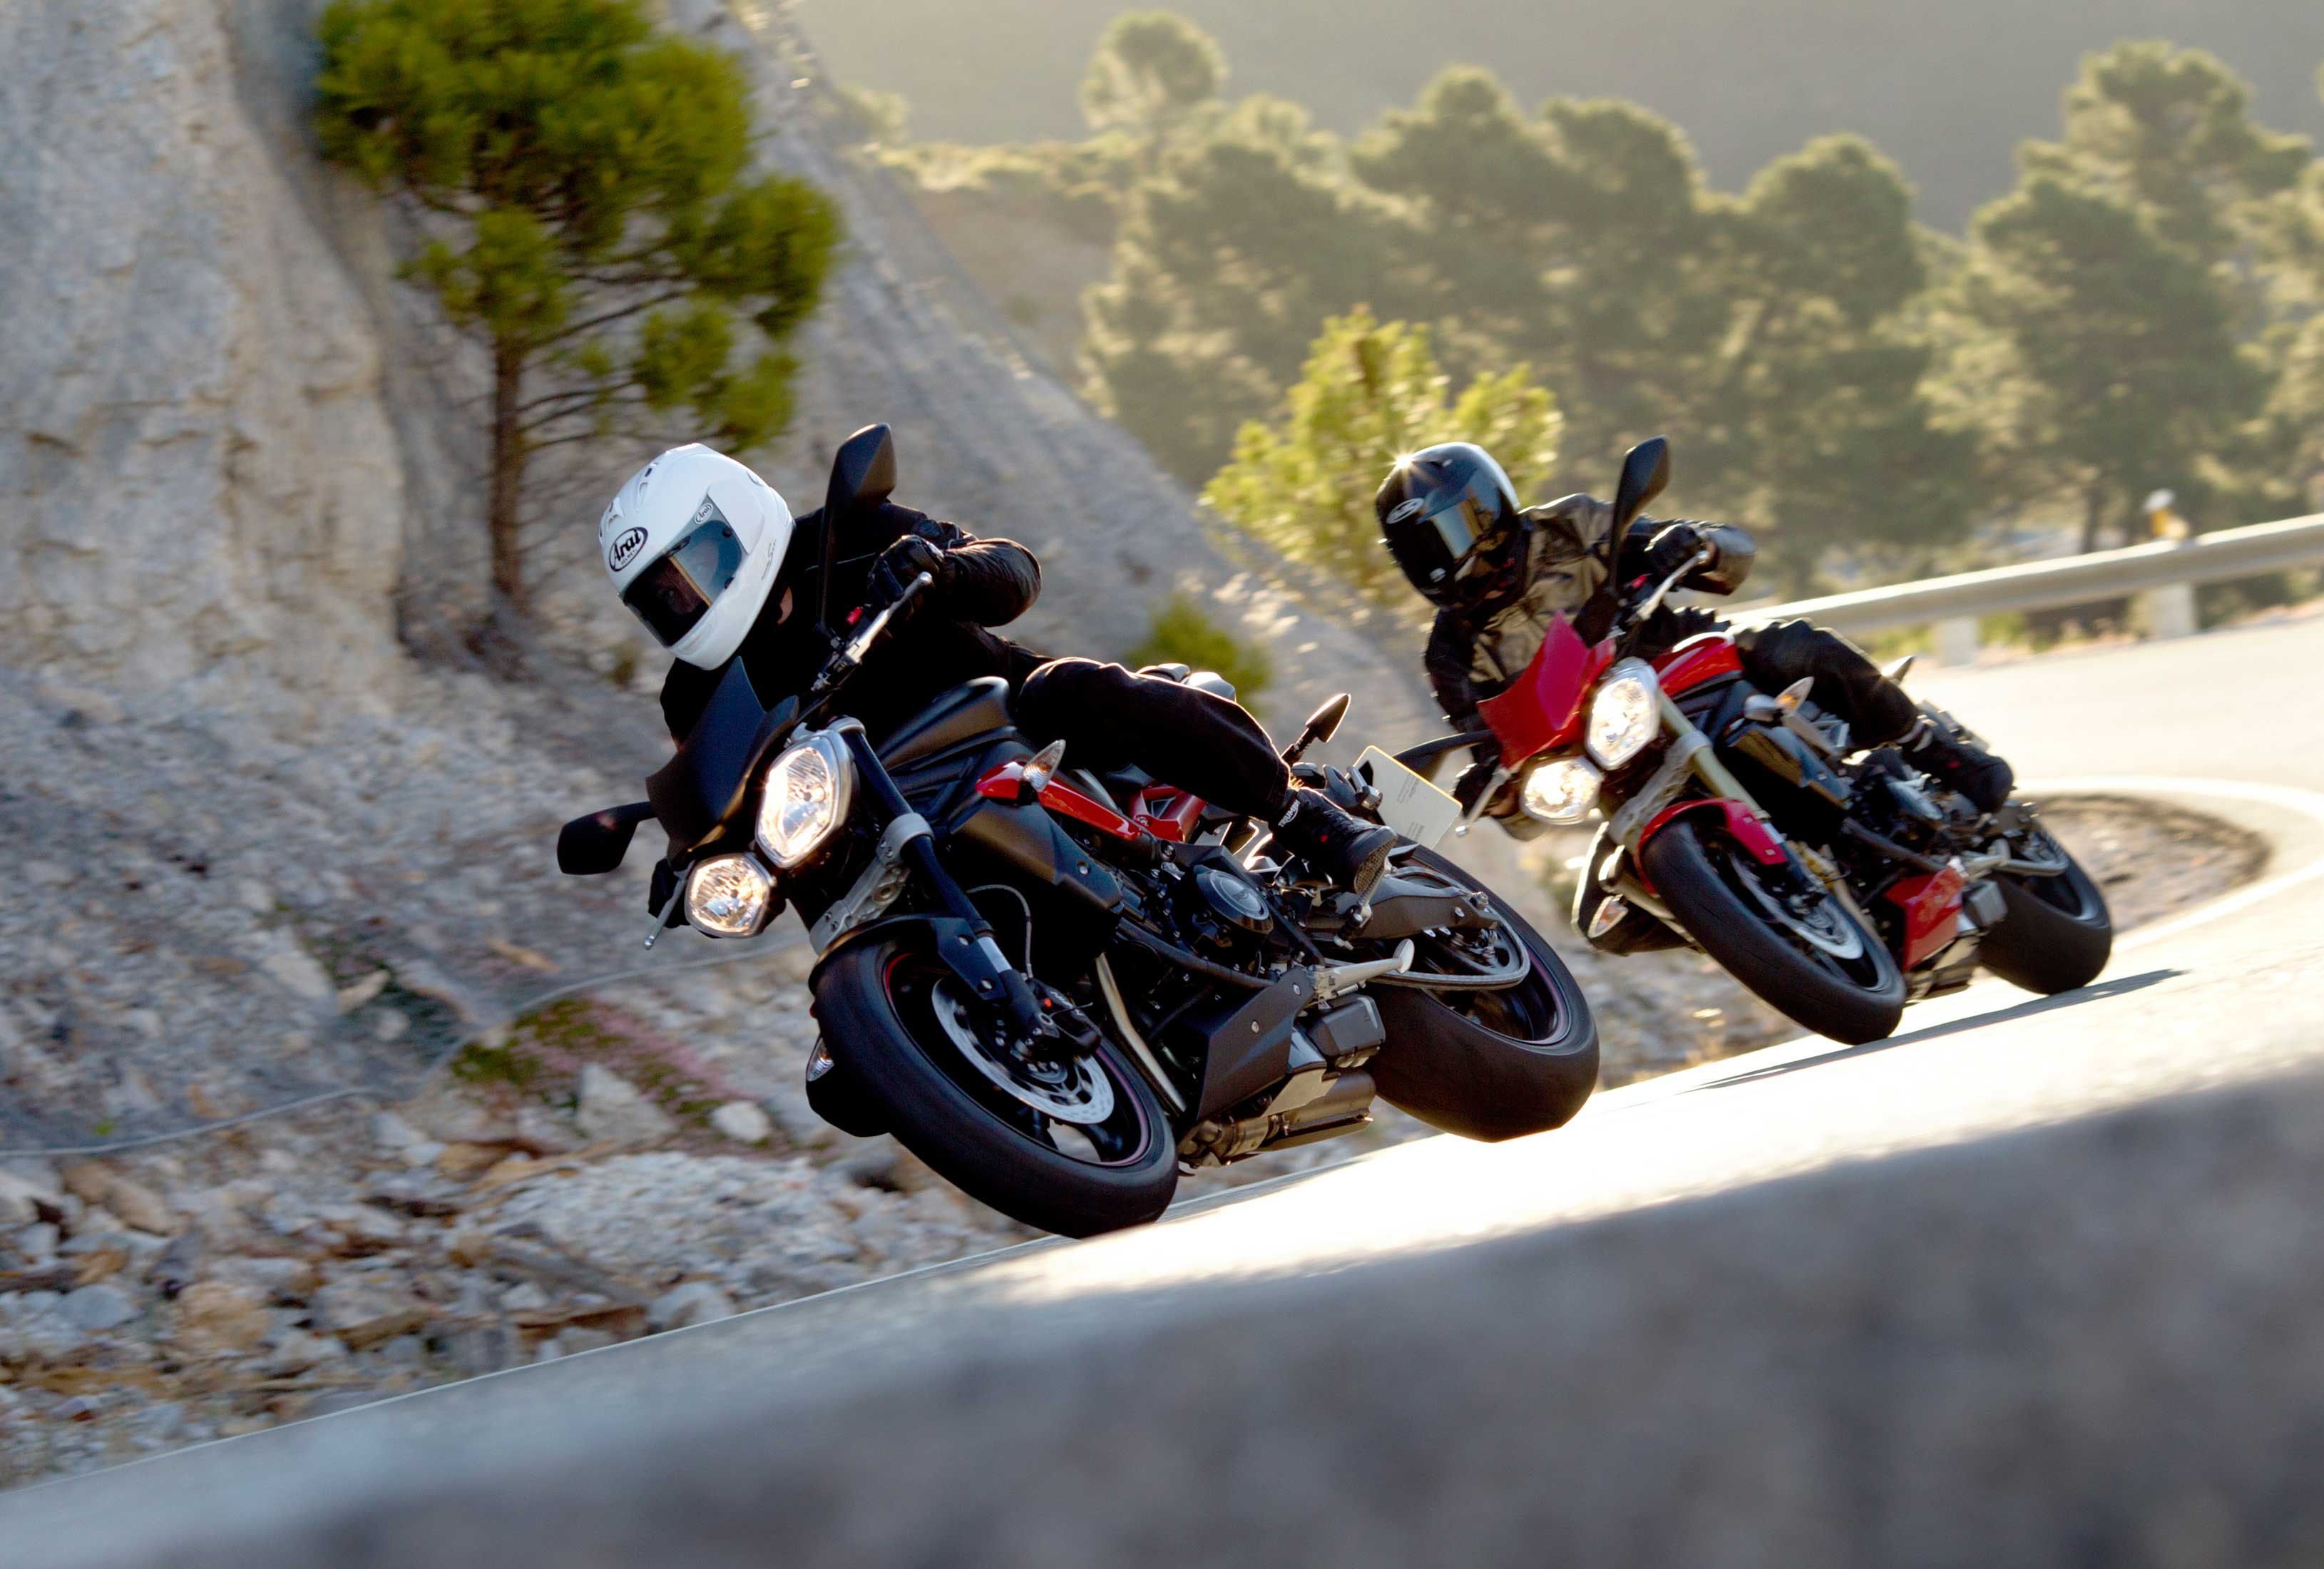 Two Triumph Street Triple R motorcycles cornering a bend